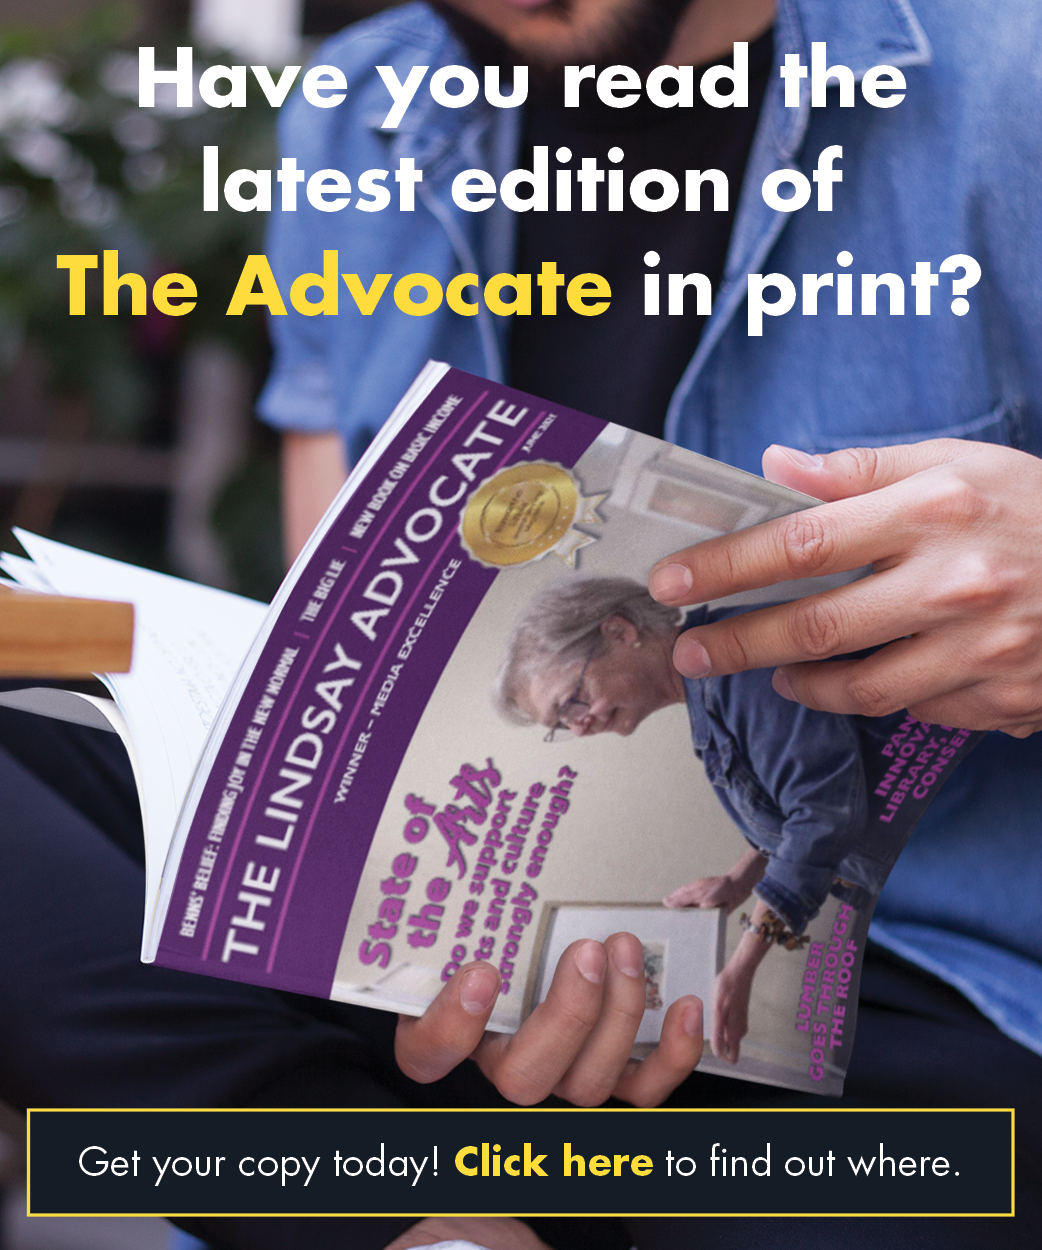 Find out where to get the latest copy of the advocate in print